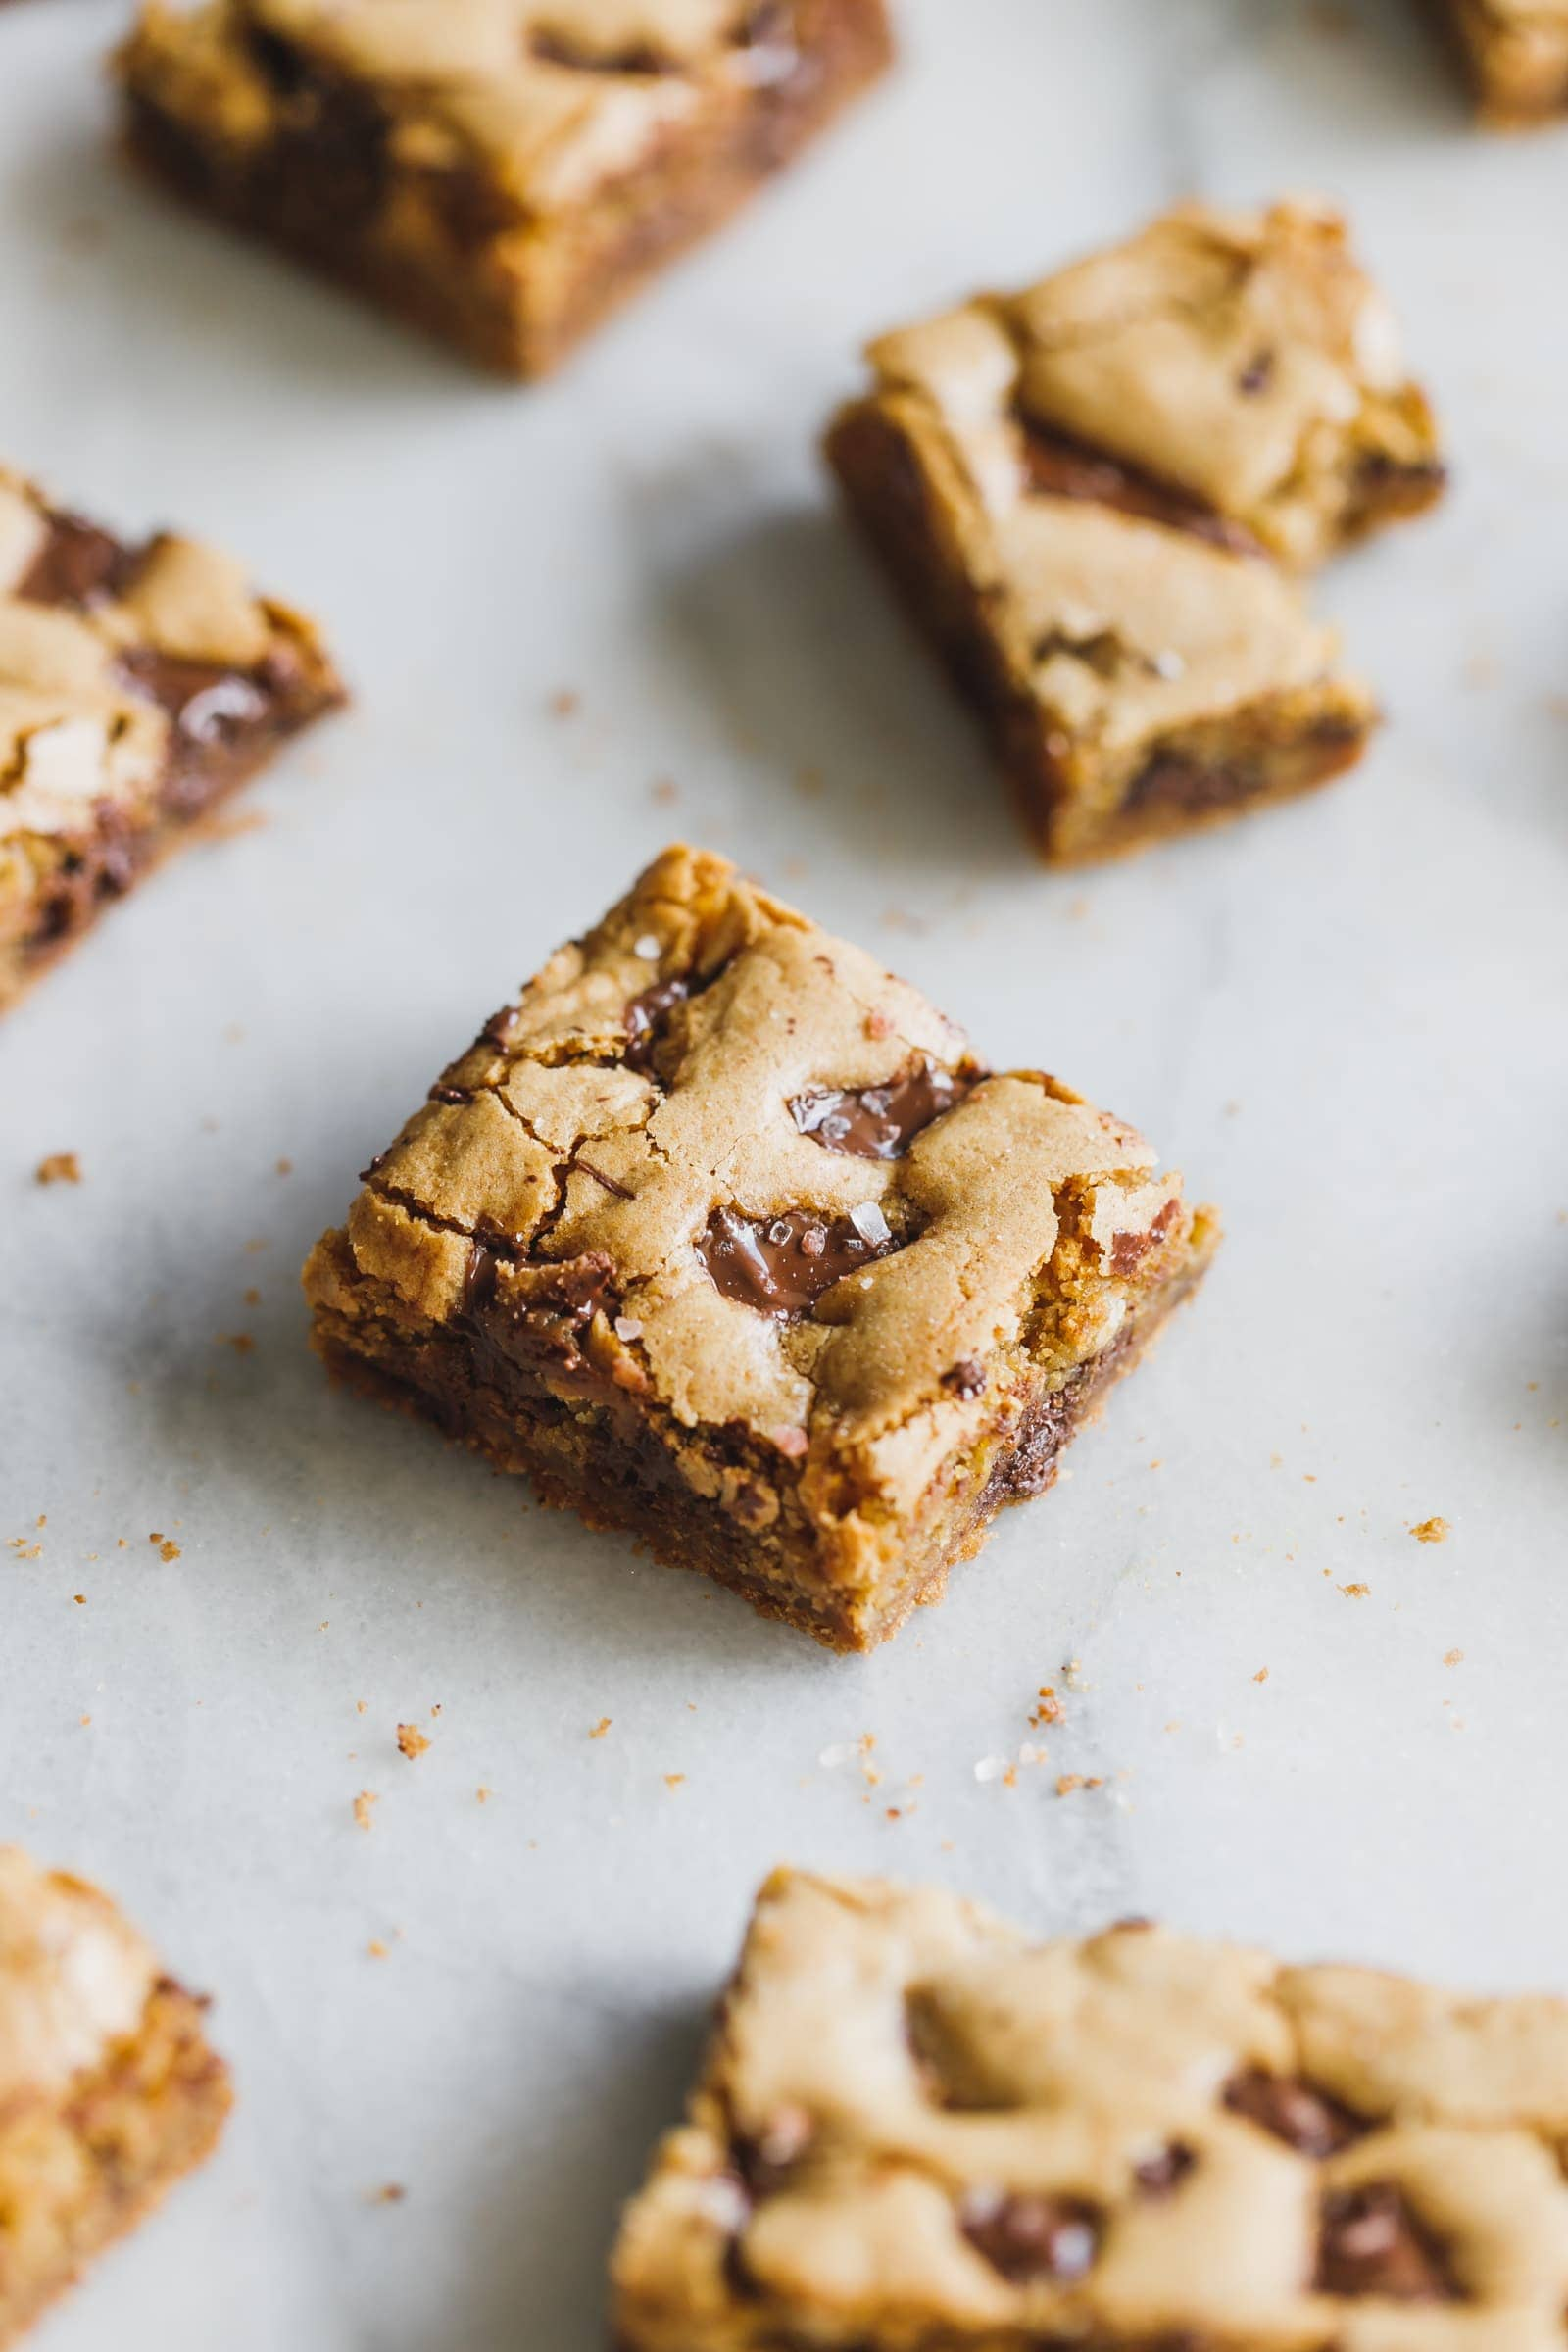 Incredibly soft, moist, thick and chewy chocolate chunk cookie bars made with coconut oil instead of butter, all in one bowl!